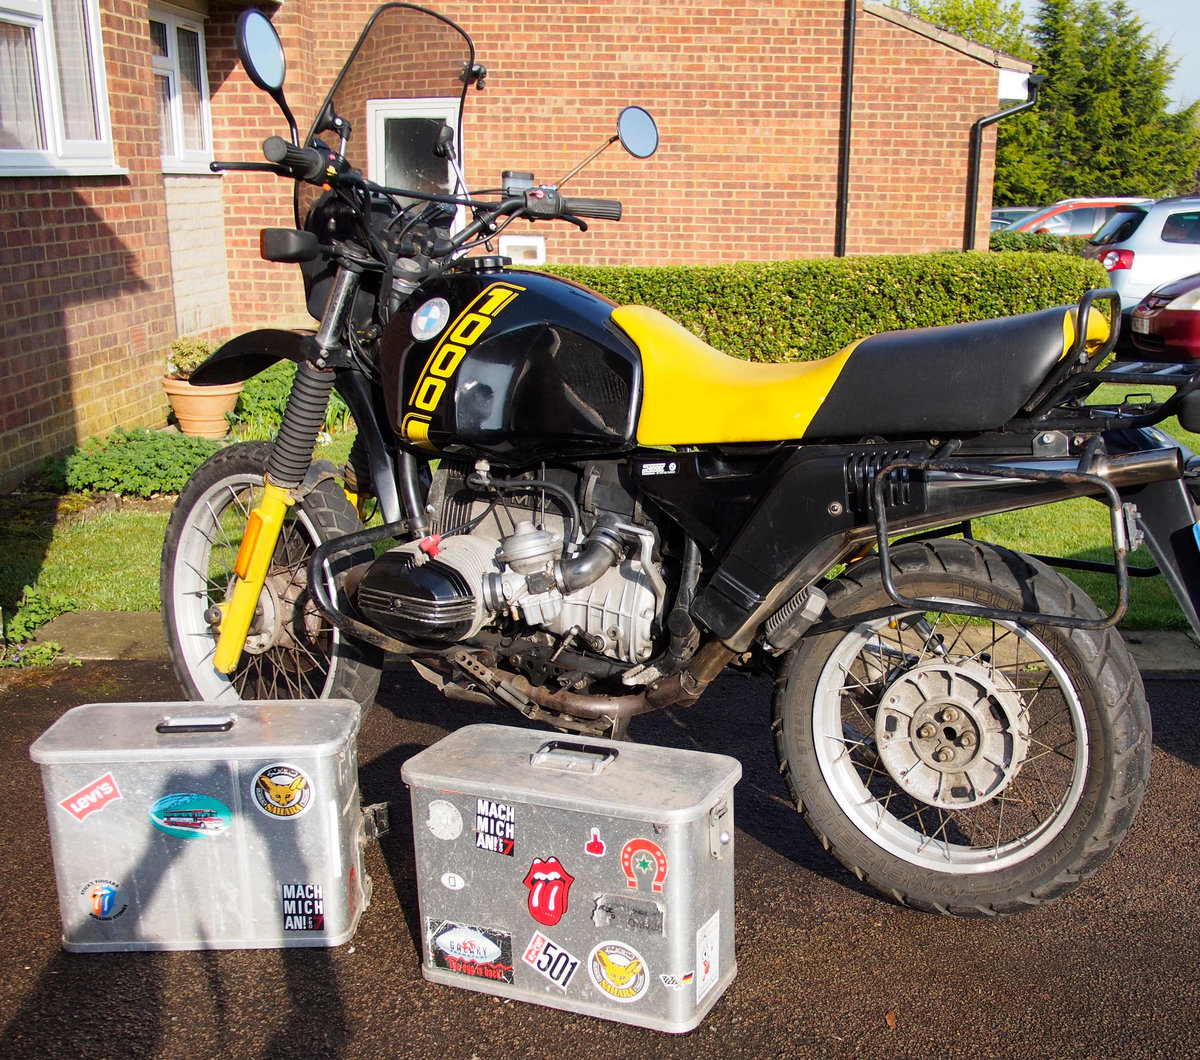 1990 BMW R100GS  For Sale (picture 3 of 5)